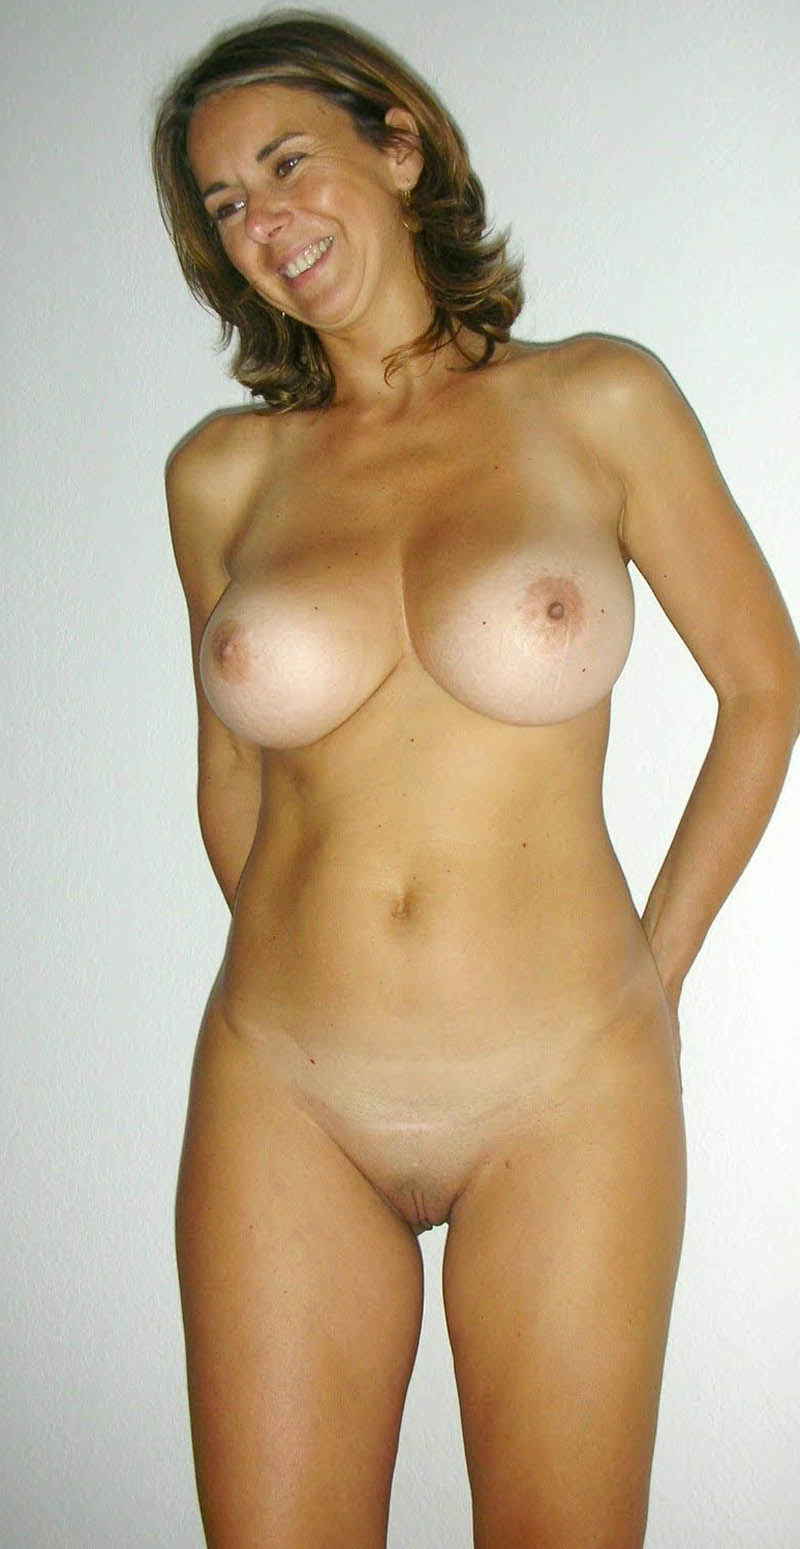 Hot Nude Wife Pics Nude Pics Media Wife Hot: www.older-mature.net/hot-nude-wife-pics/164296.html